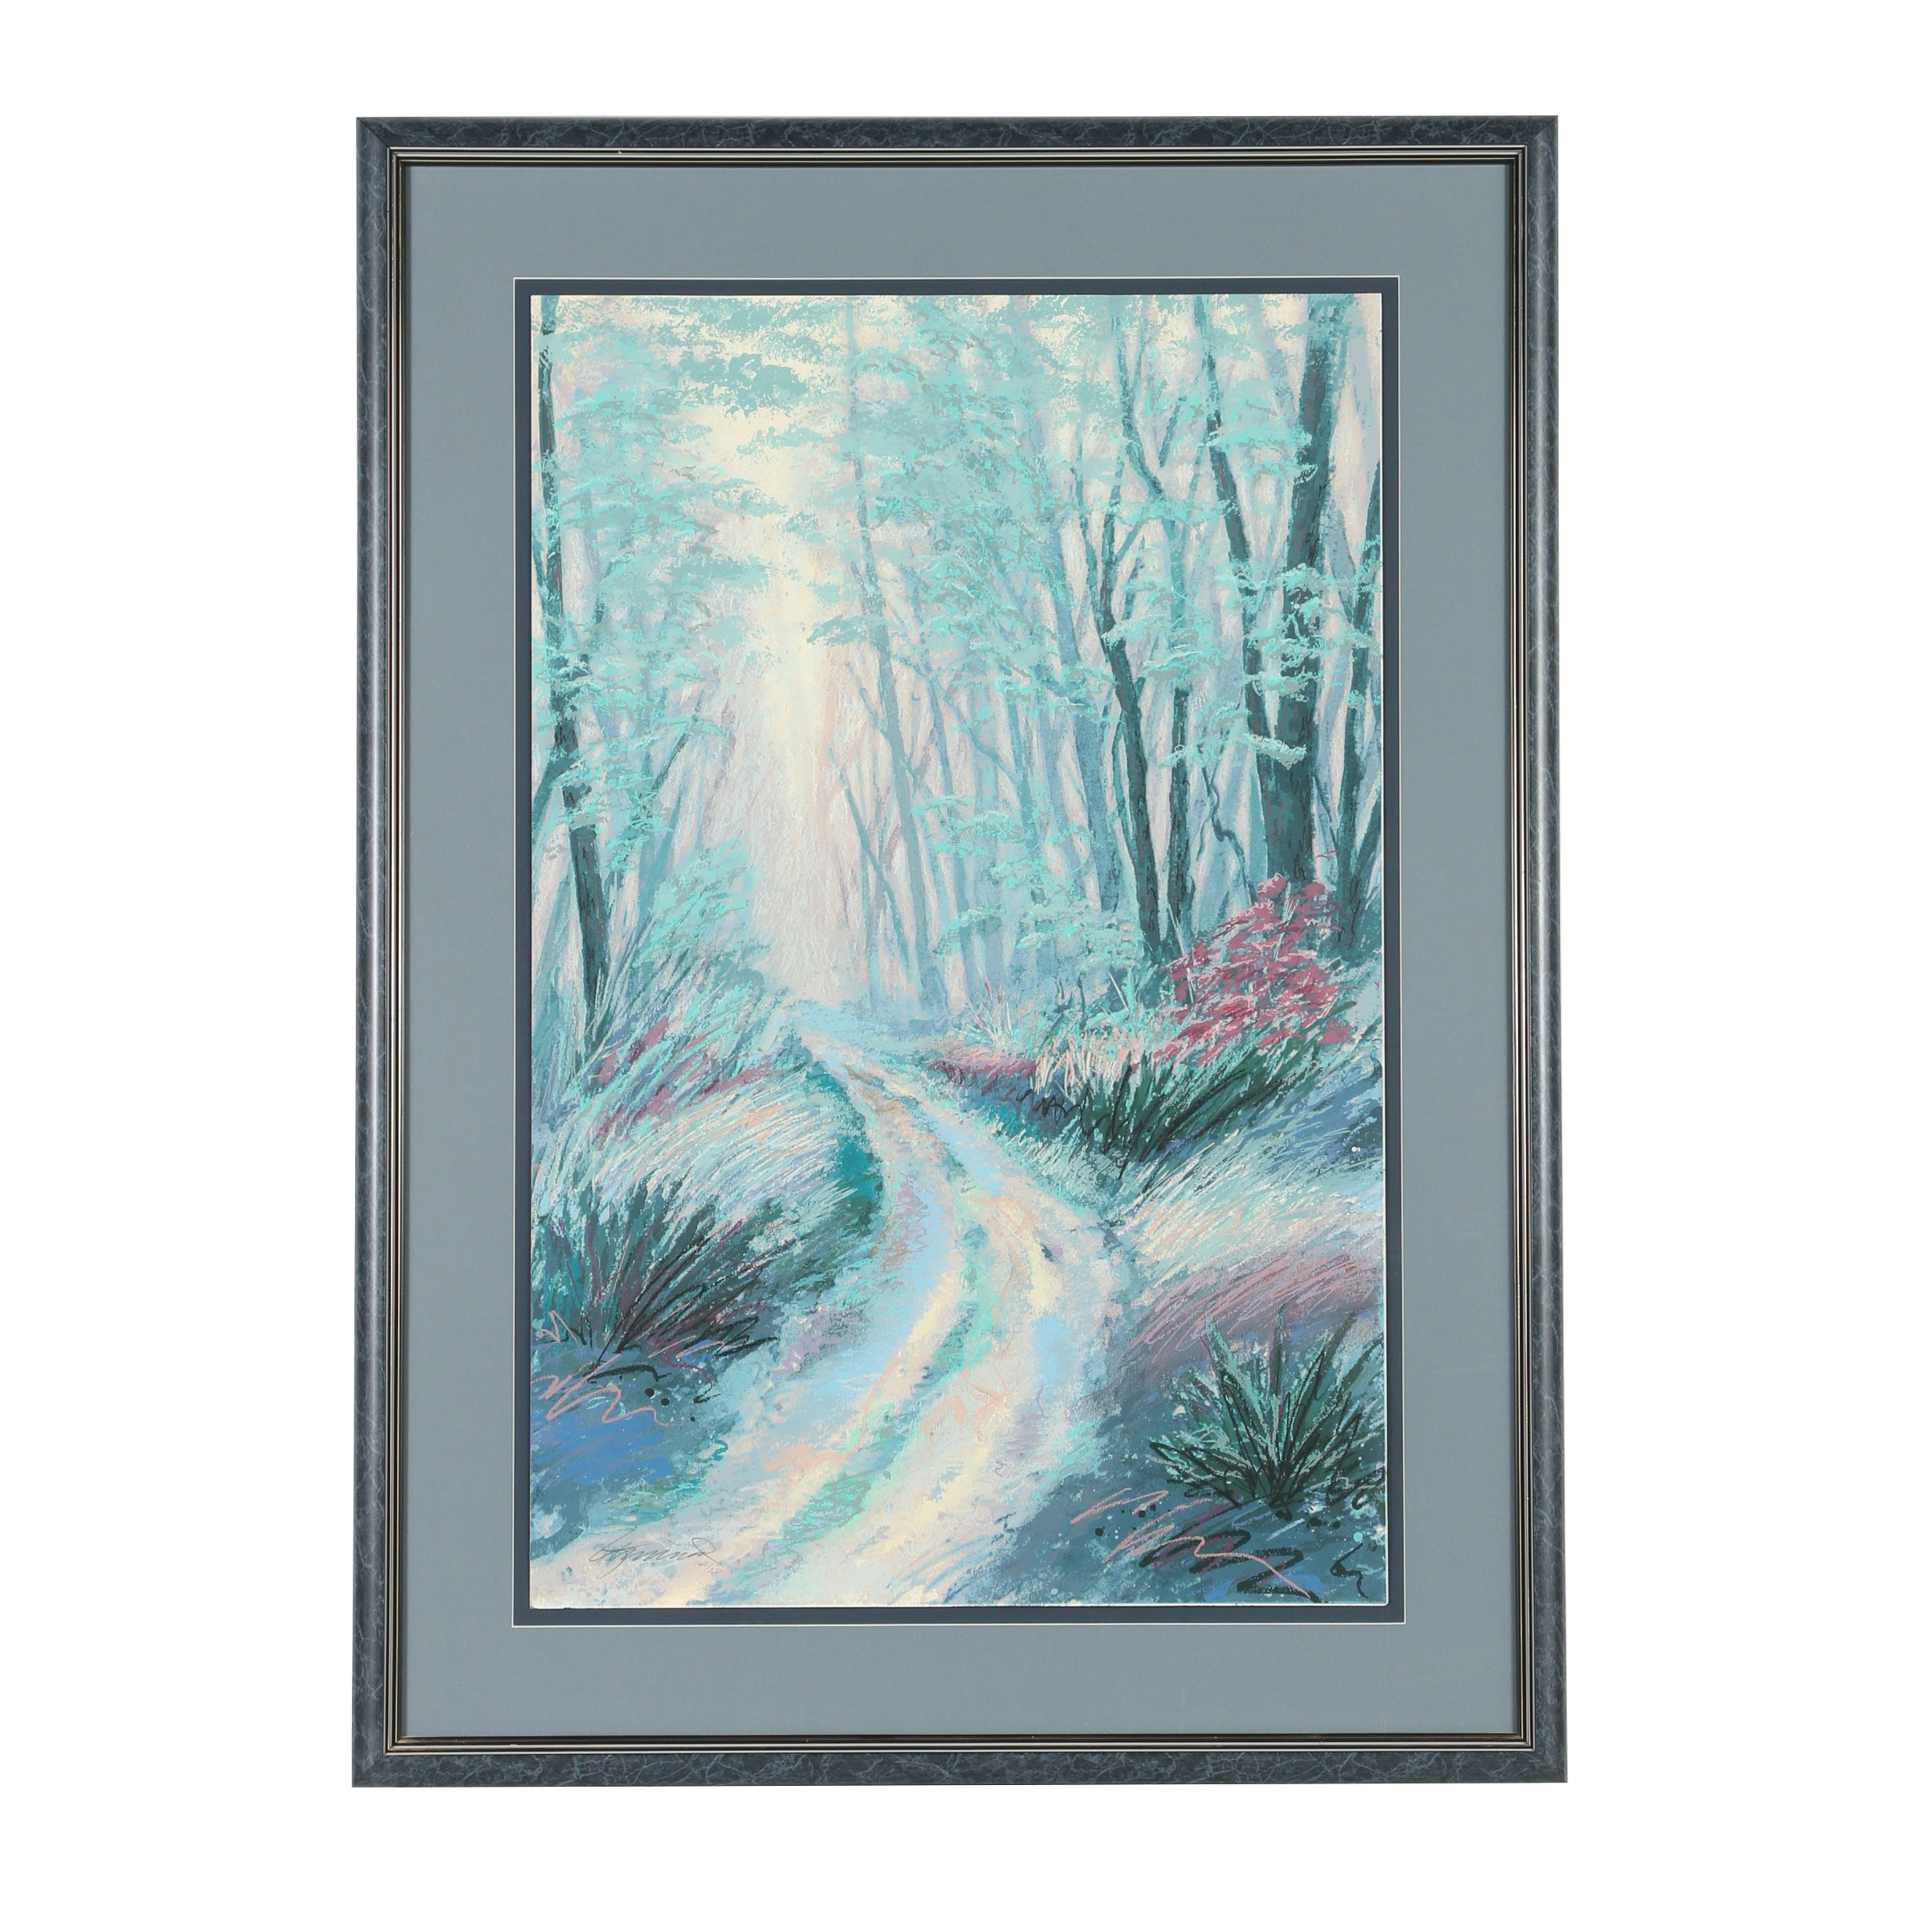 Limited Edition Serigraph of a Forest Path